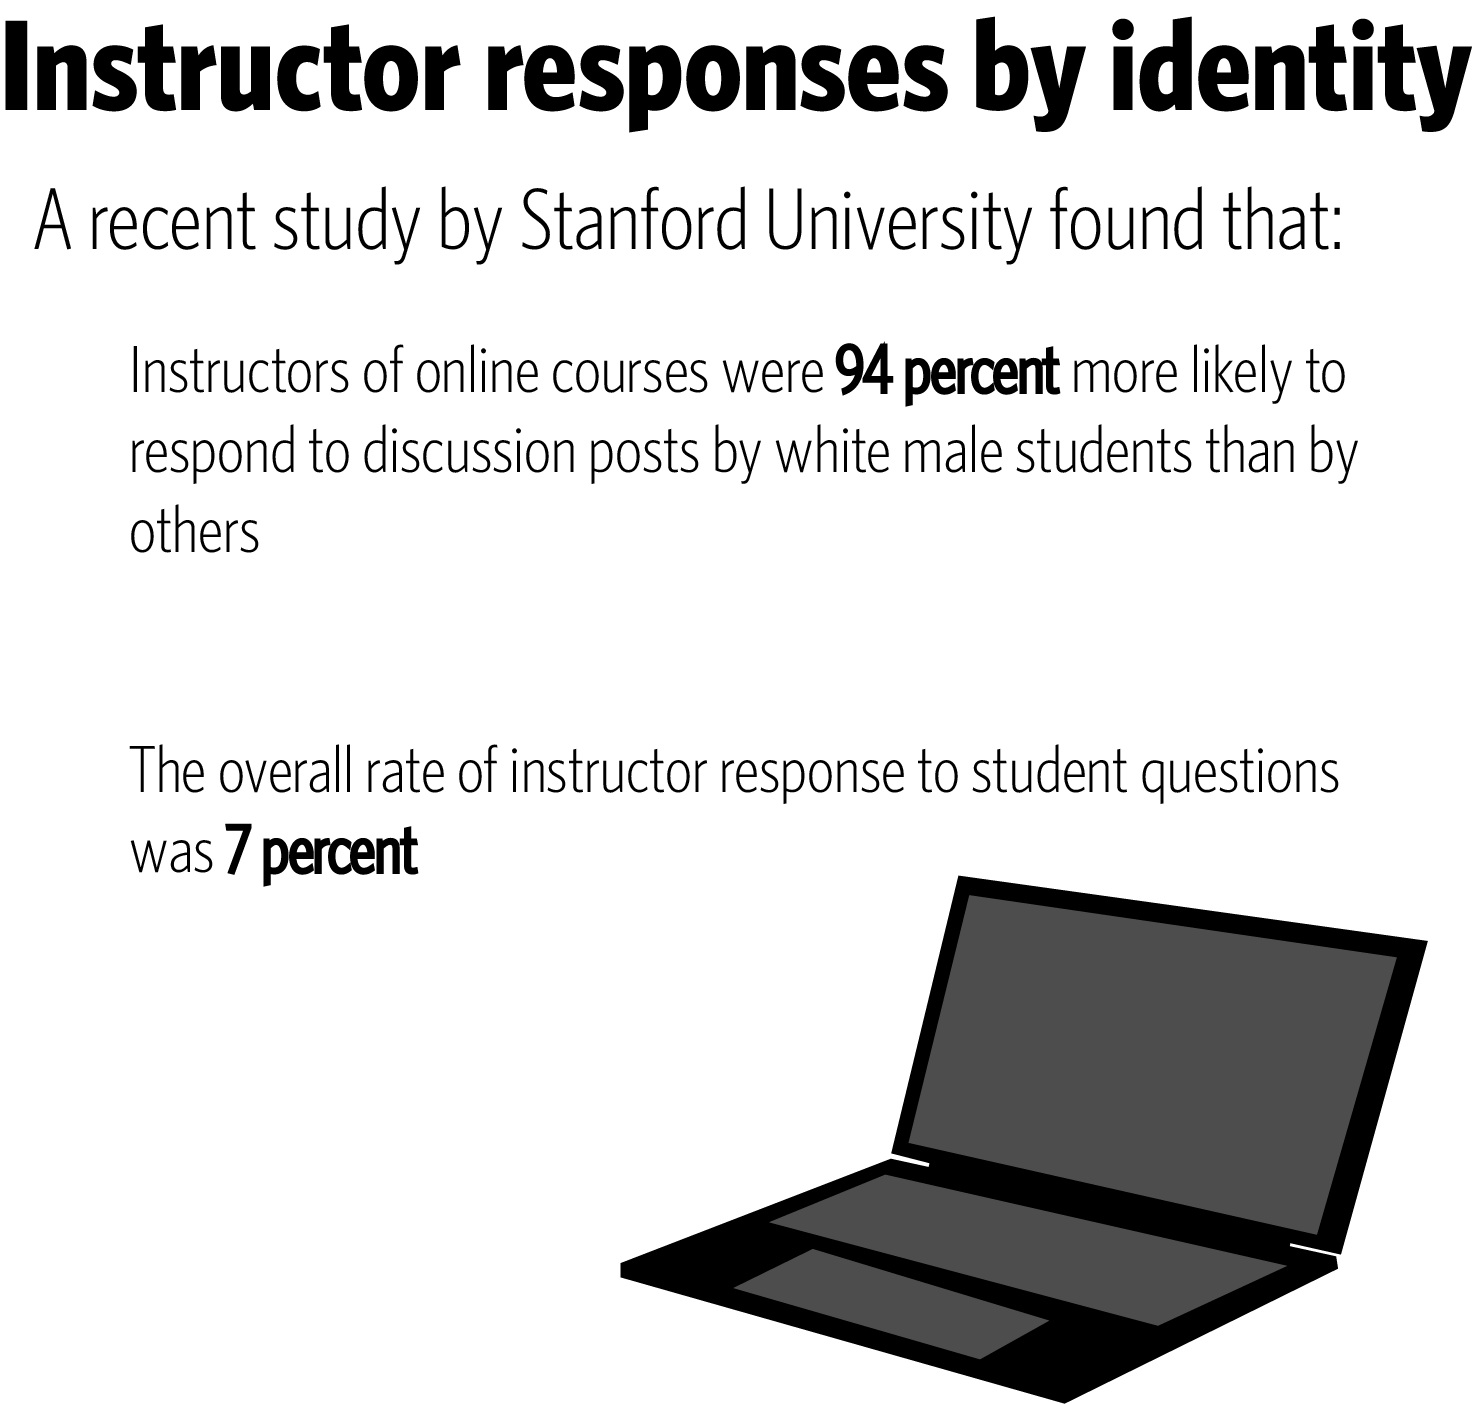 Source: Stanford Center for Education Policy Analysis